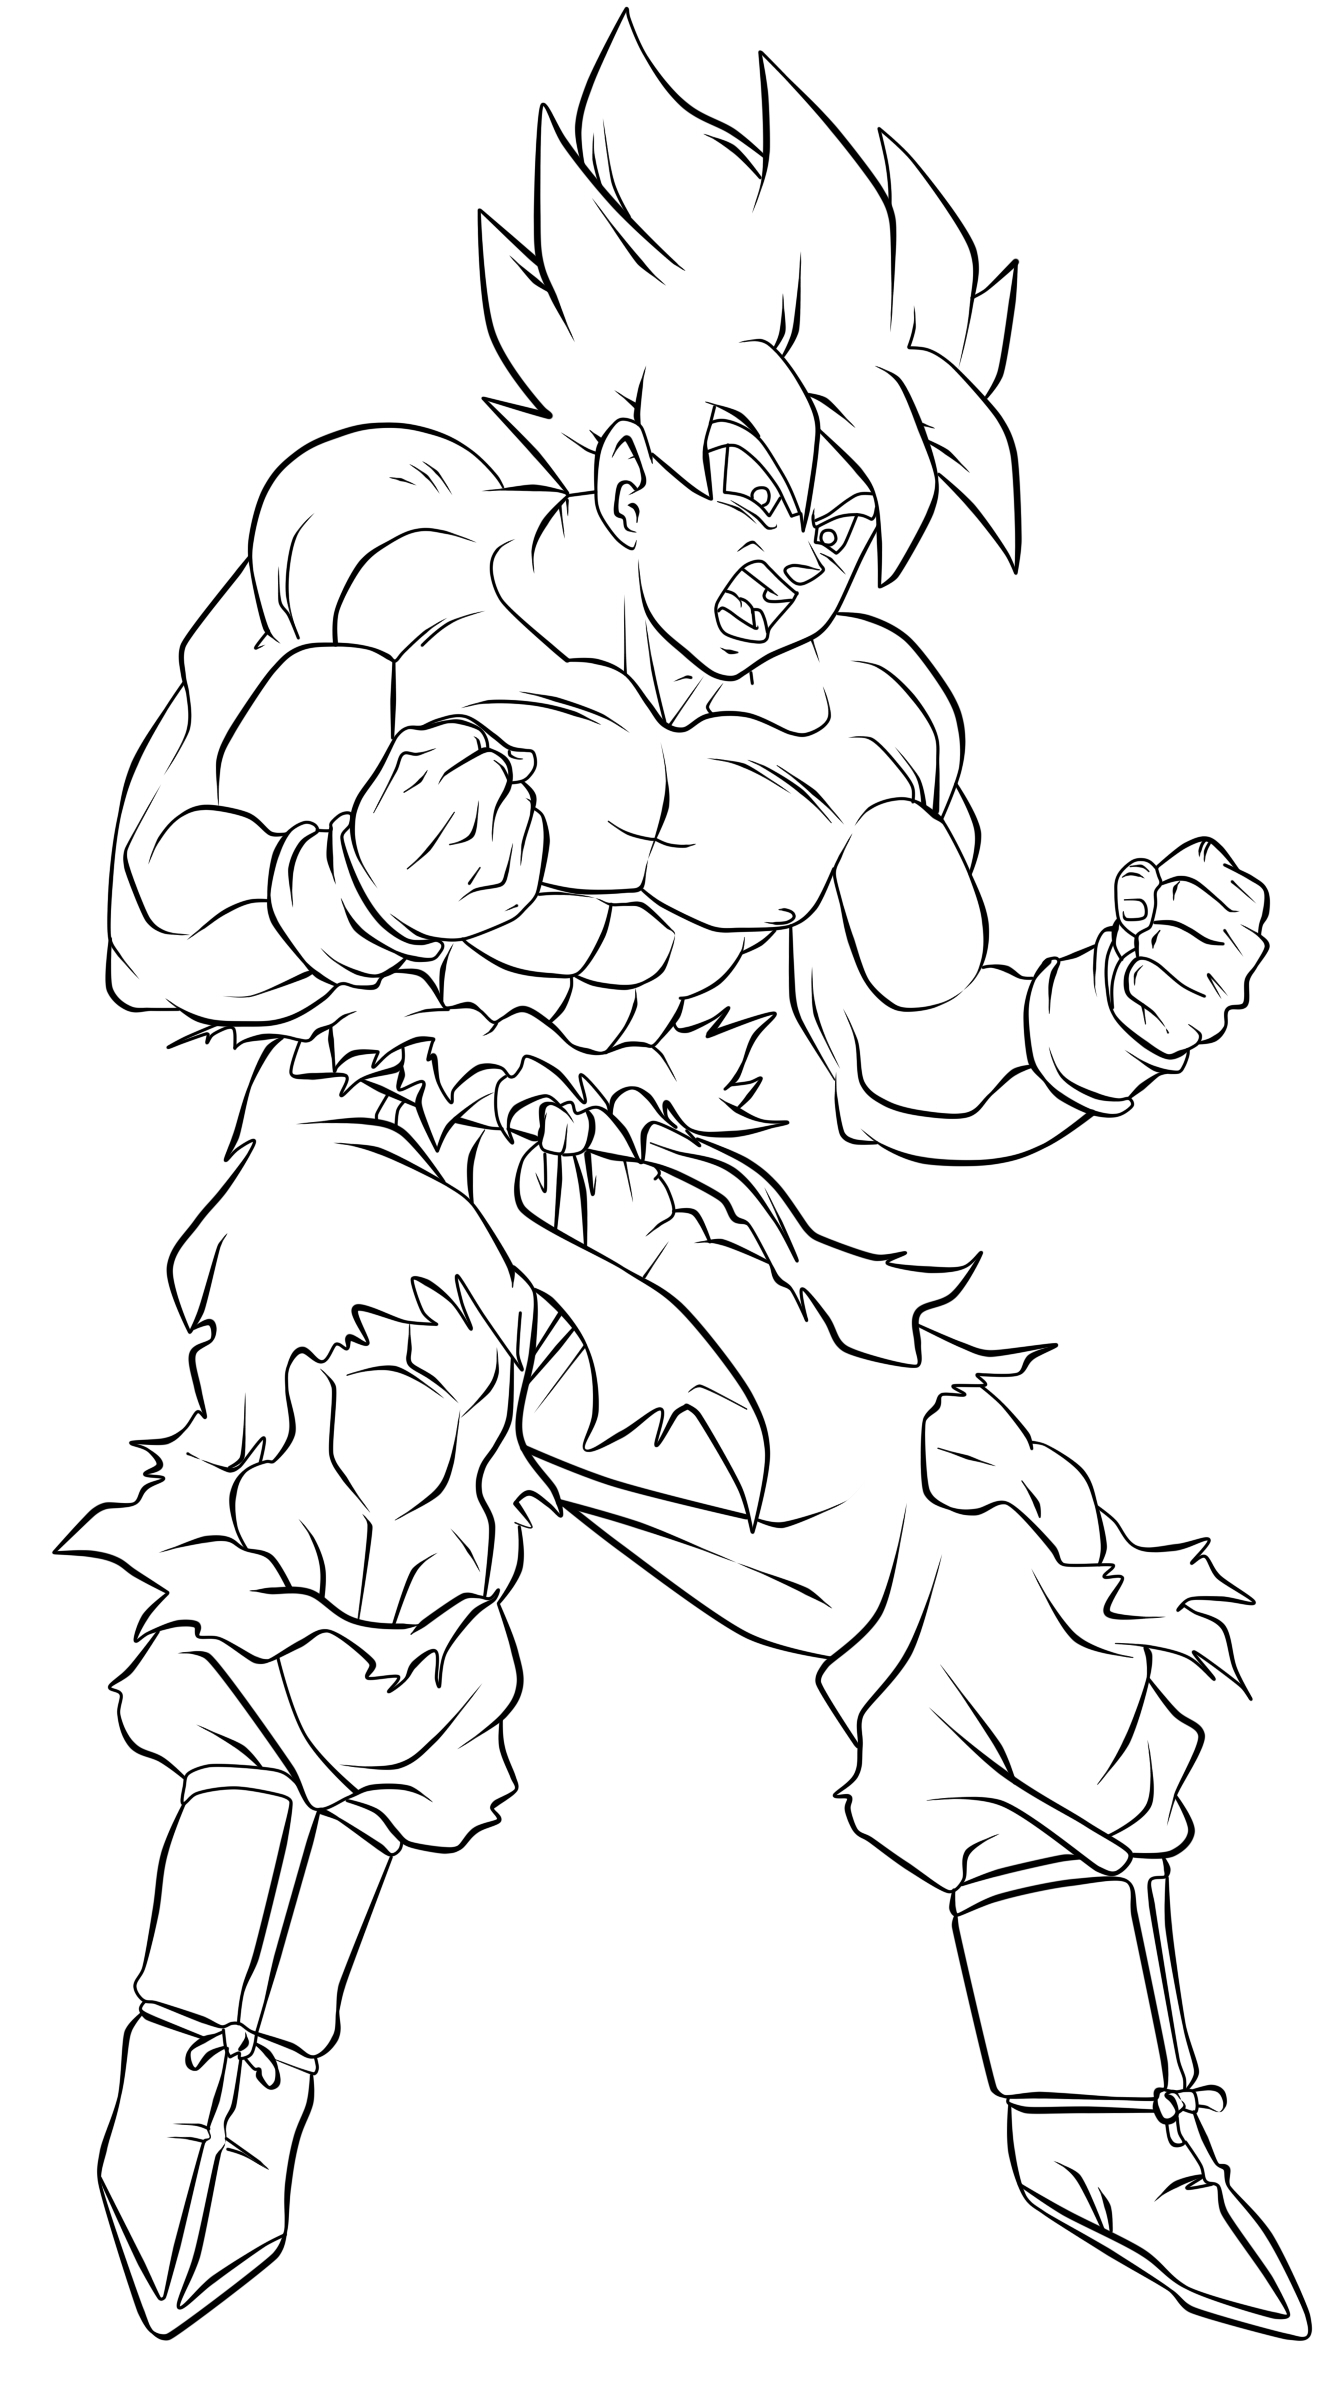 step by step drawing goku how to draw goku from dragon ball z with easy step by step drawing step by step goku